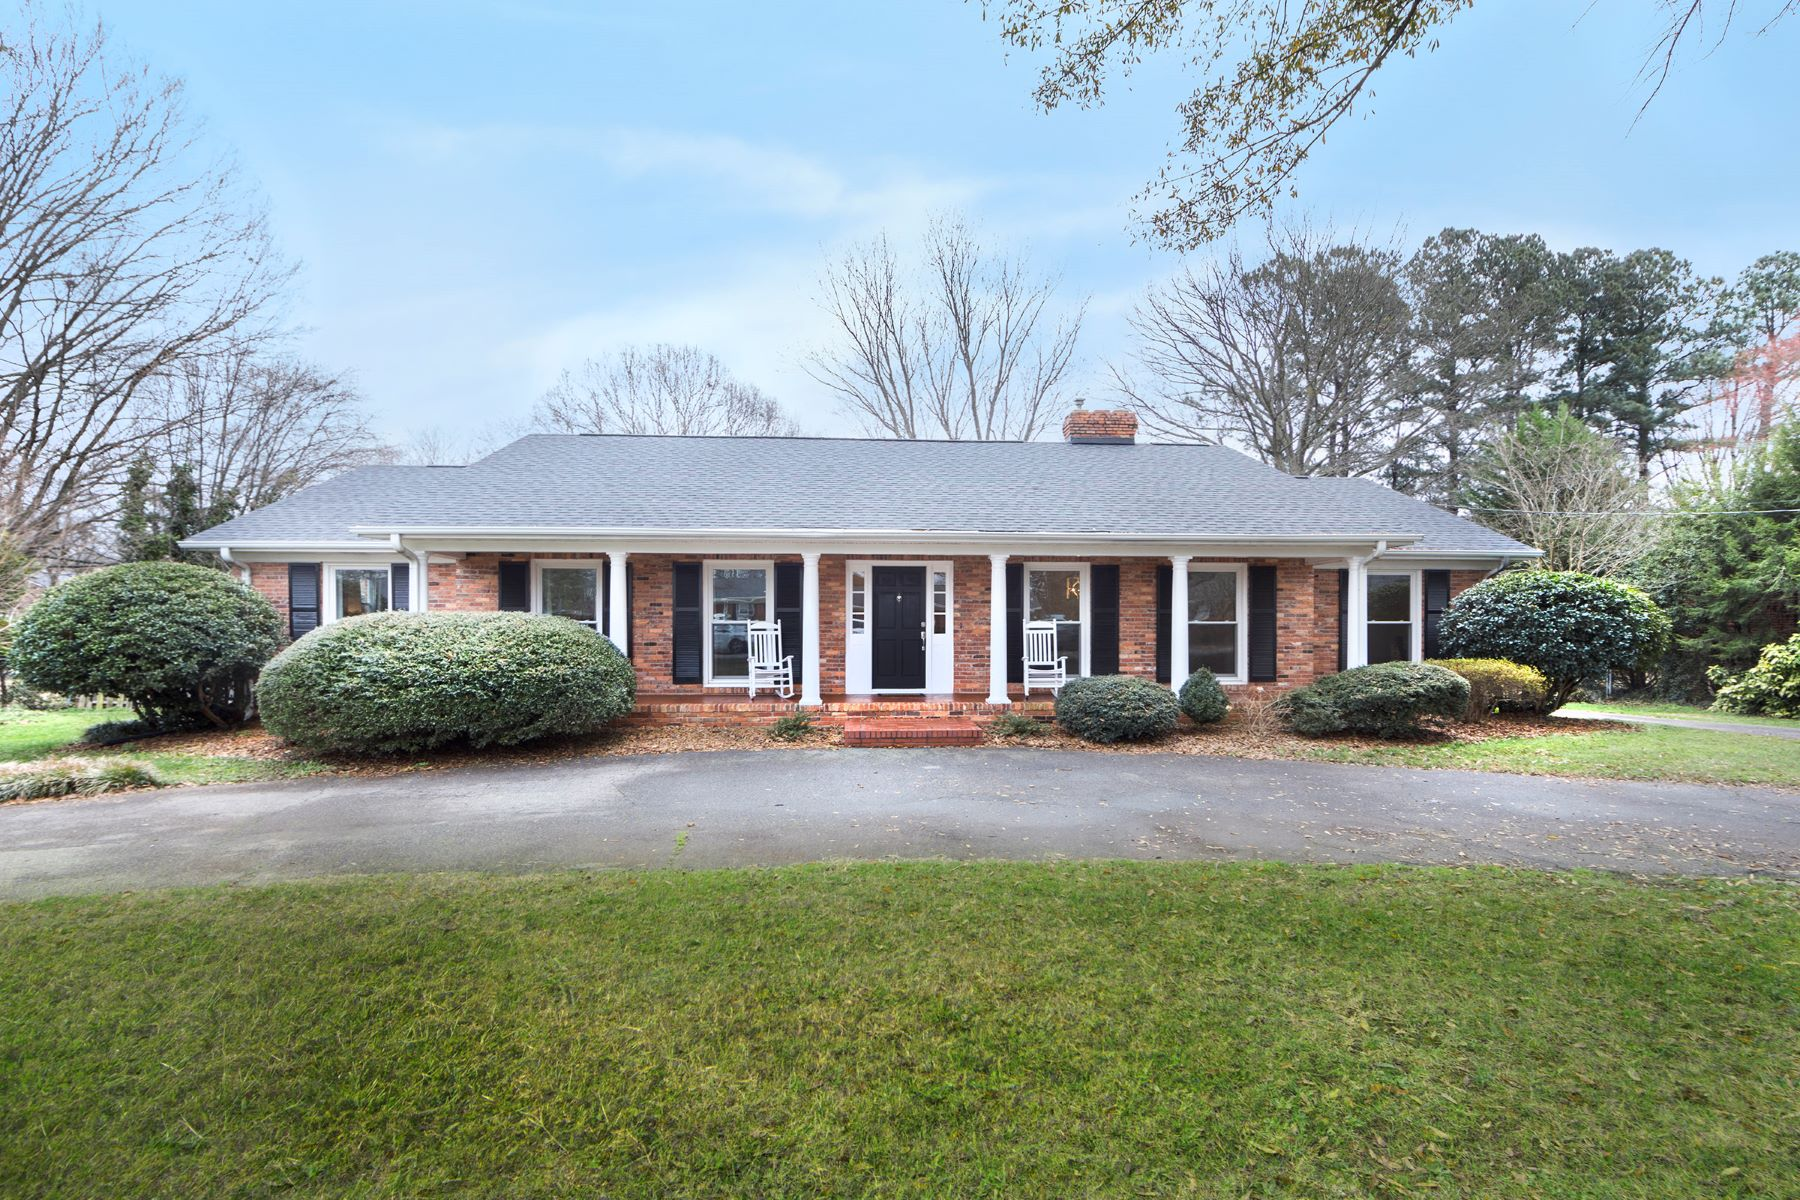 Single Family Home for Sale at 15 Isbell Lane 15 Isbell Lane Greenville, South Carolina 29607 United States